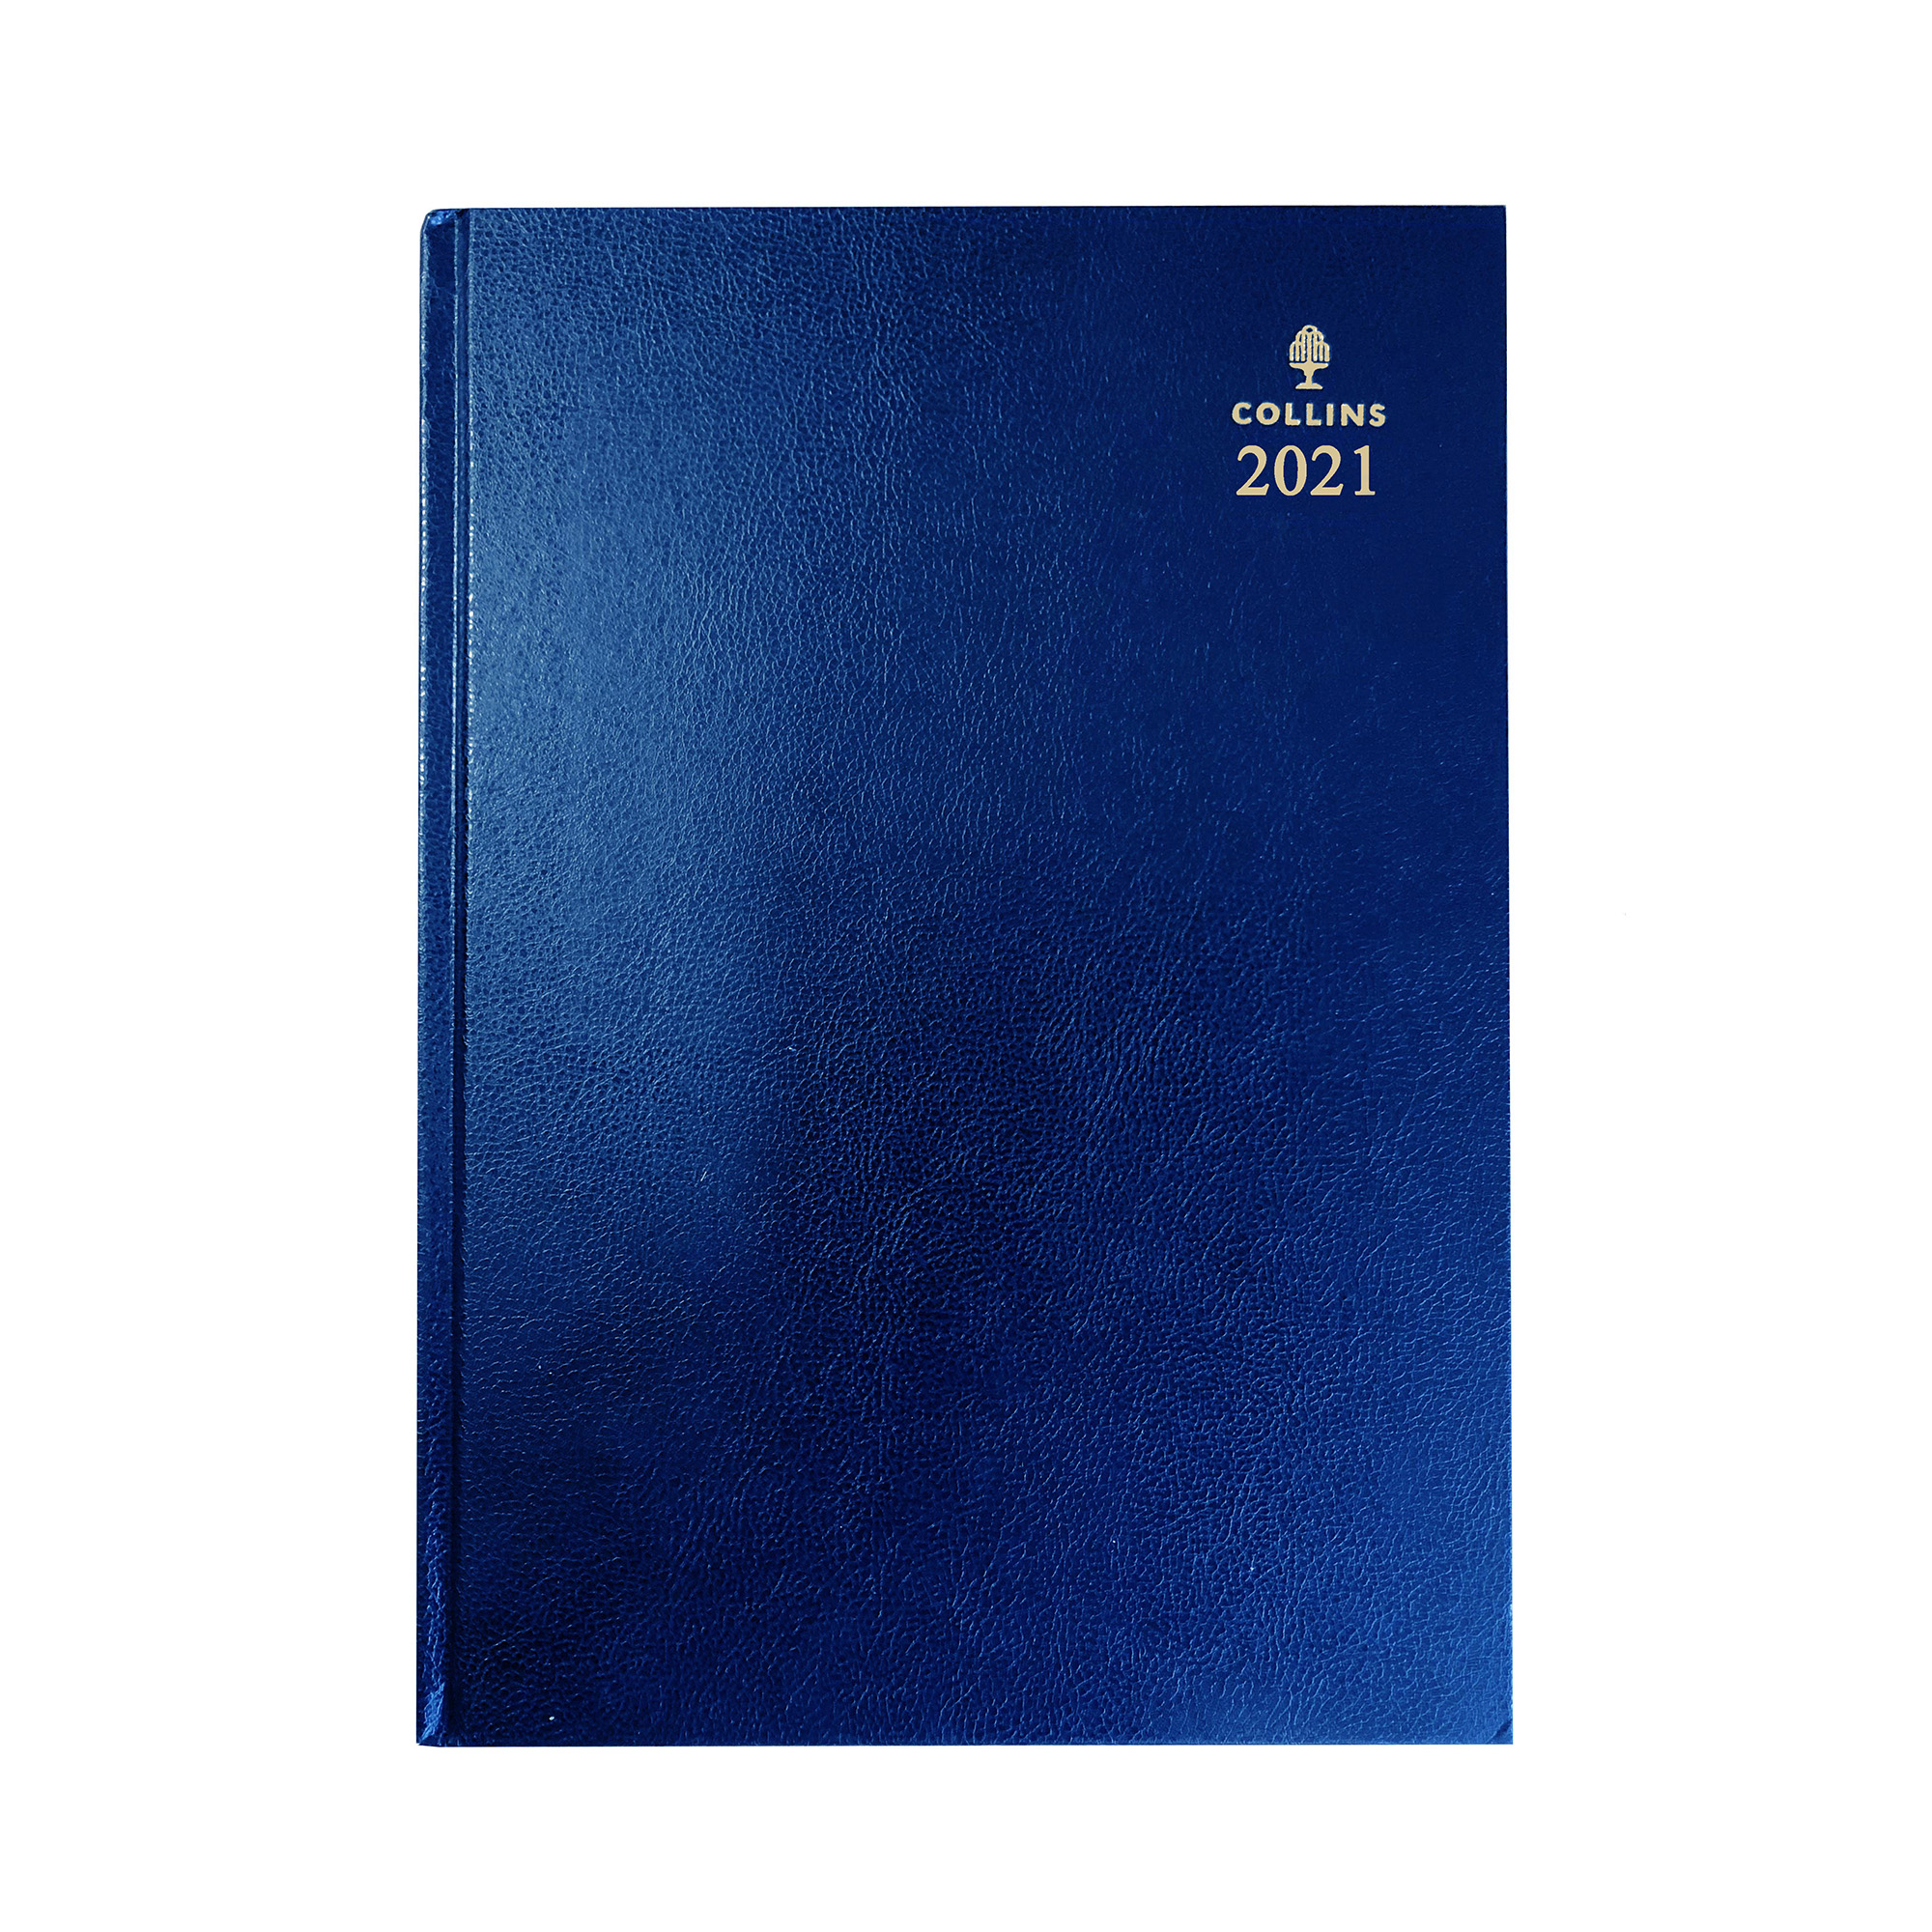 Diaries or refills Collins 2021 Royal Desk Diary Day to Page Sewn Binding A5 210x148mm Blue Ref 52 Blu 2021